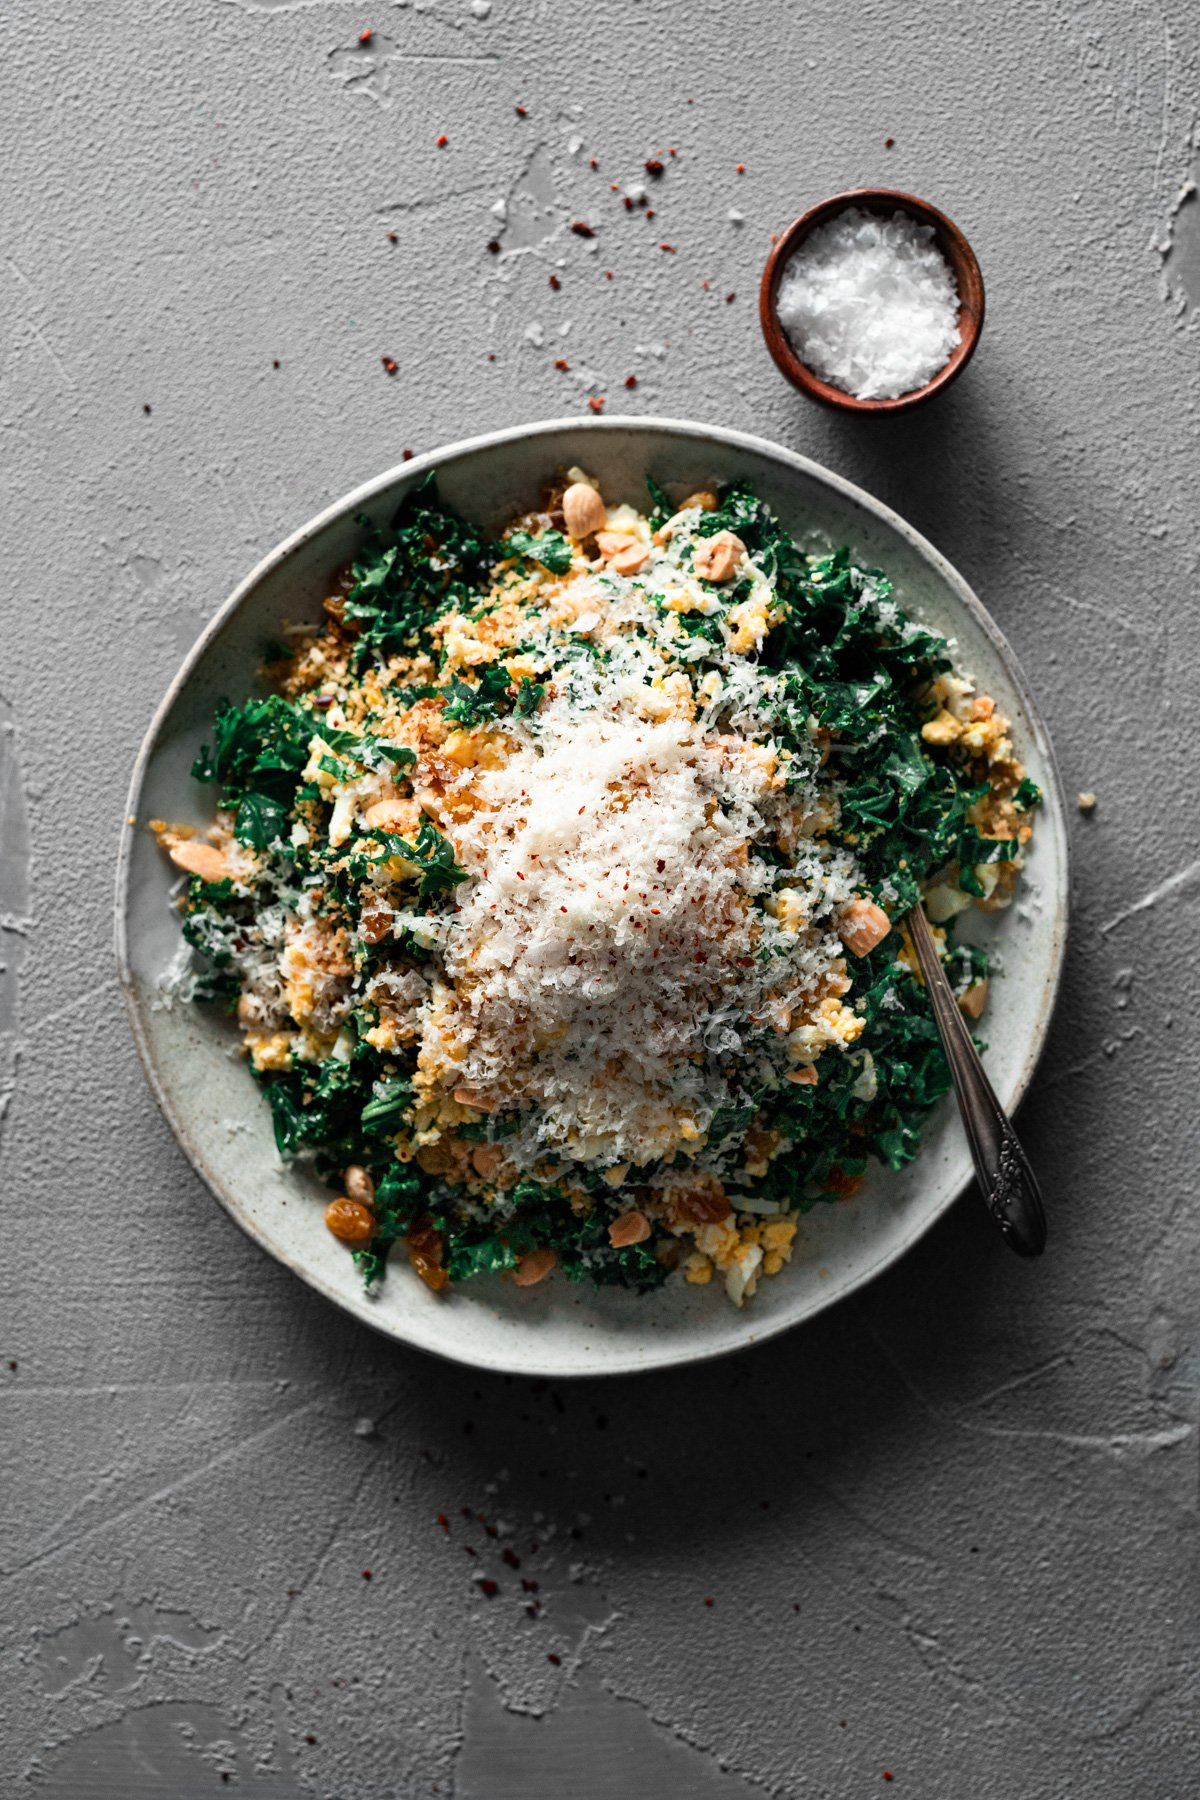 bowl with easy kale salad recipe with marcona almonds, manchego, and aleppo pepper